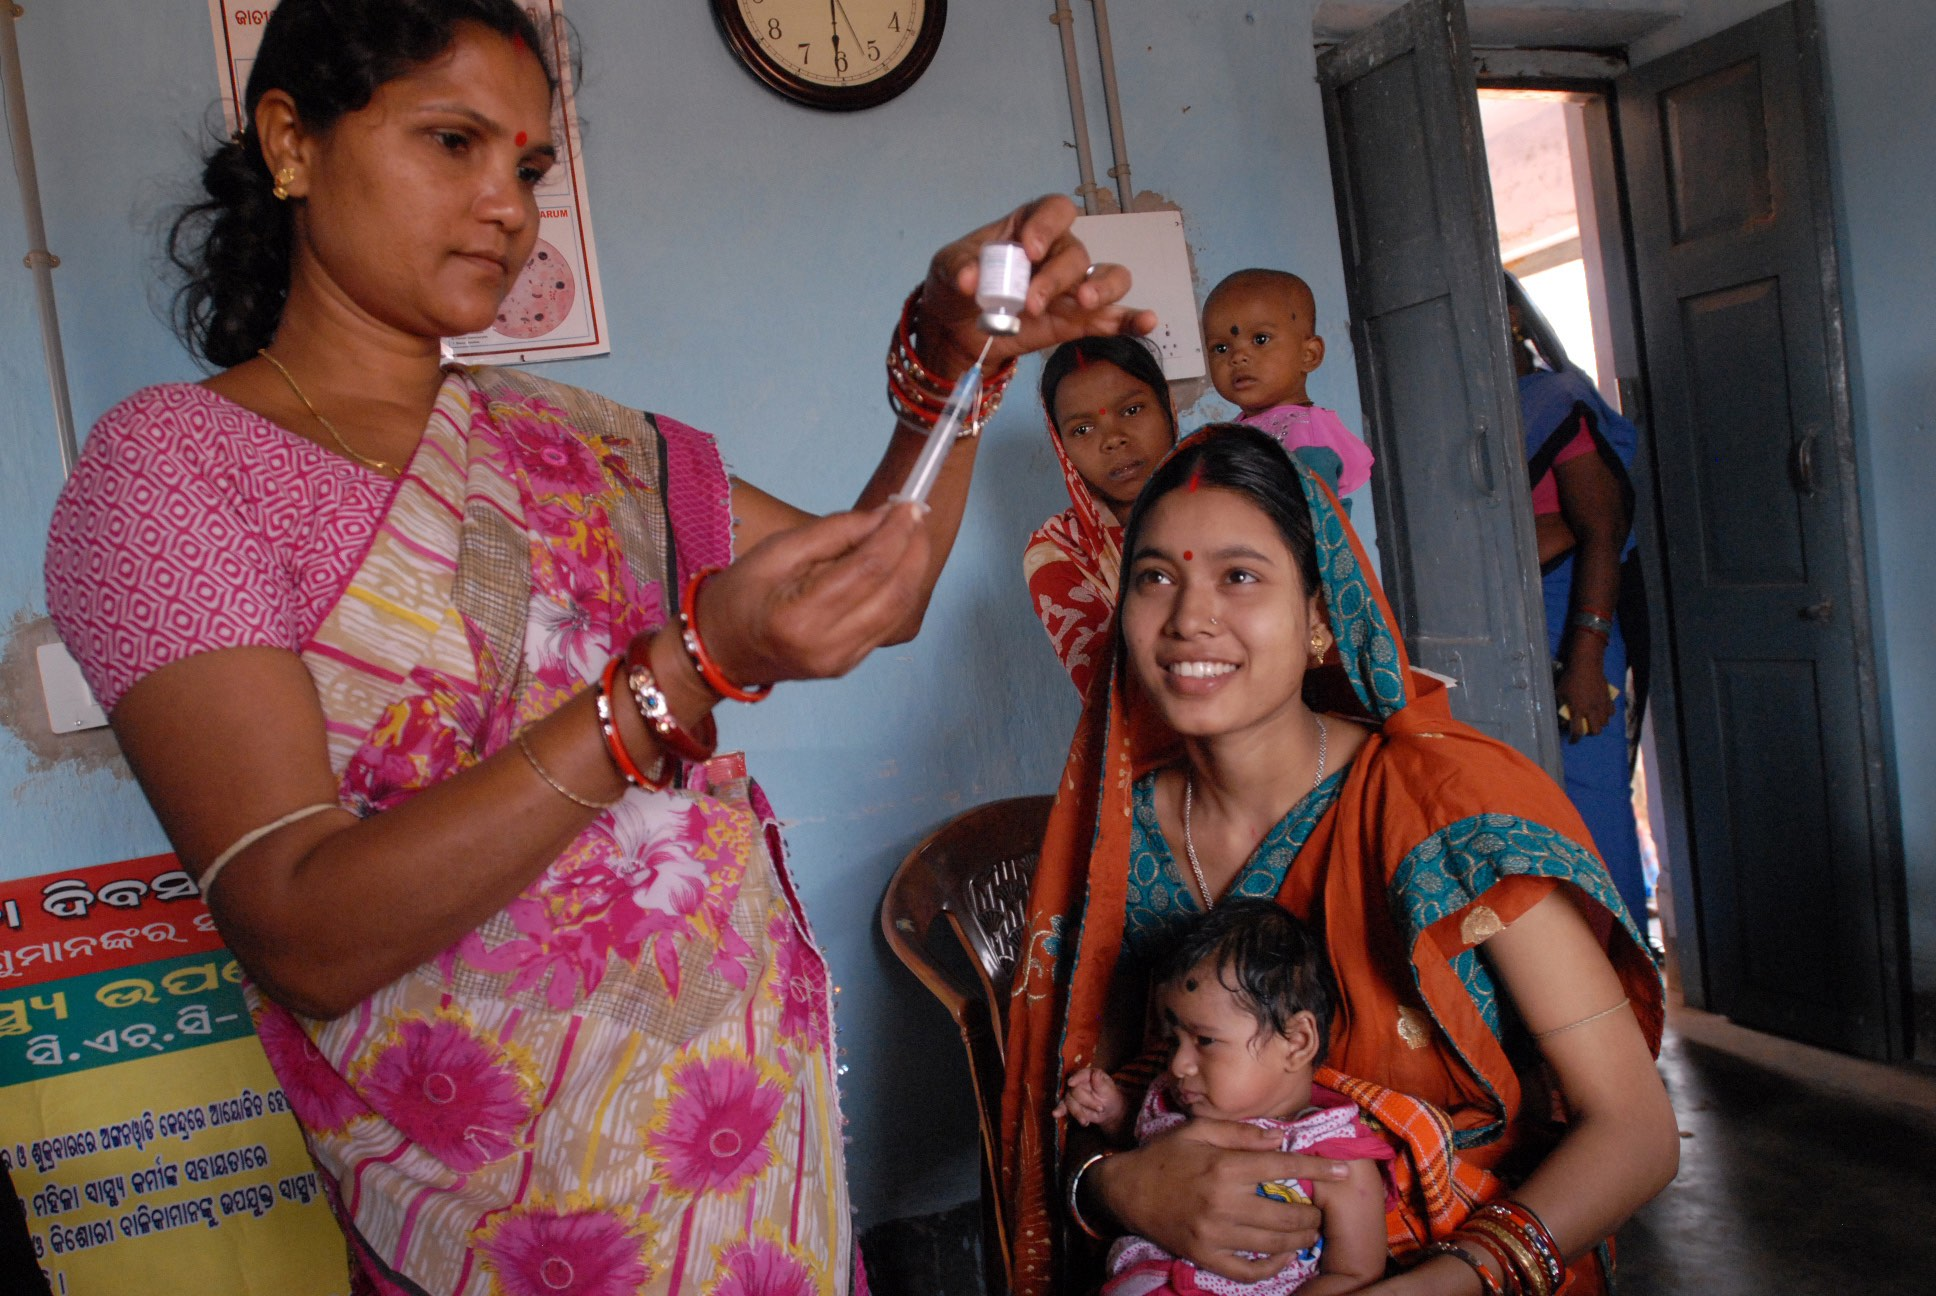 A community health worker gives a vaccination in Odisha state, India. Credit: Wikimedia